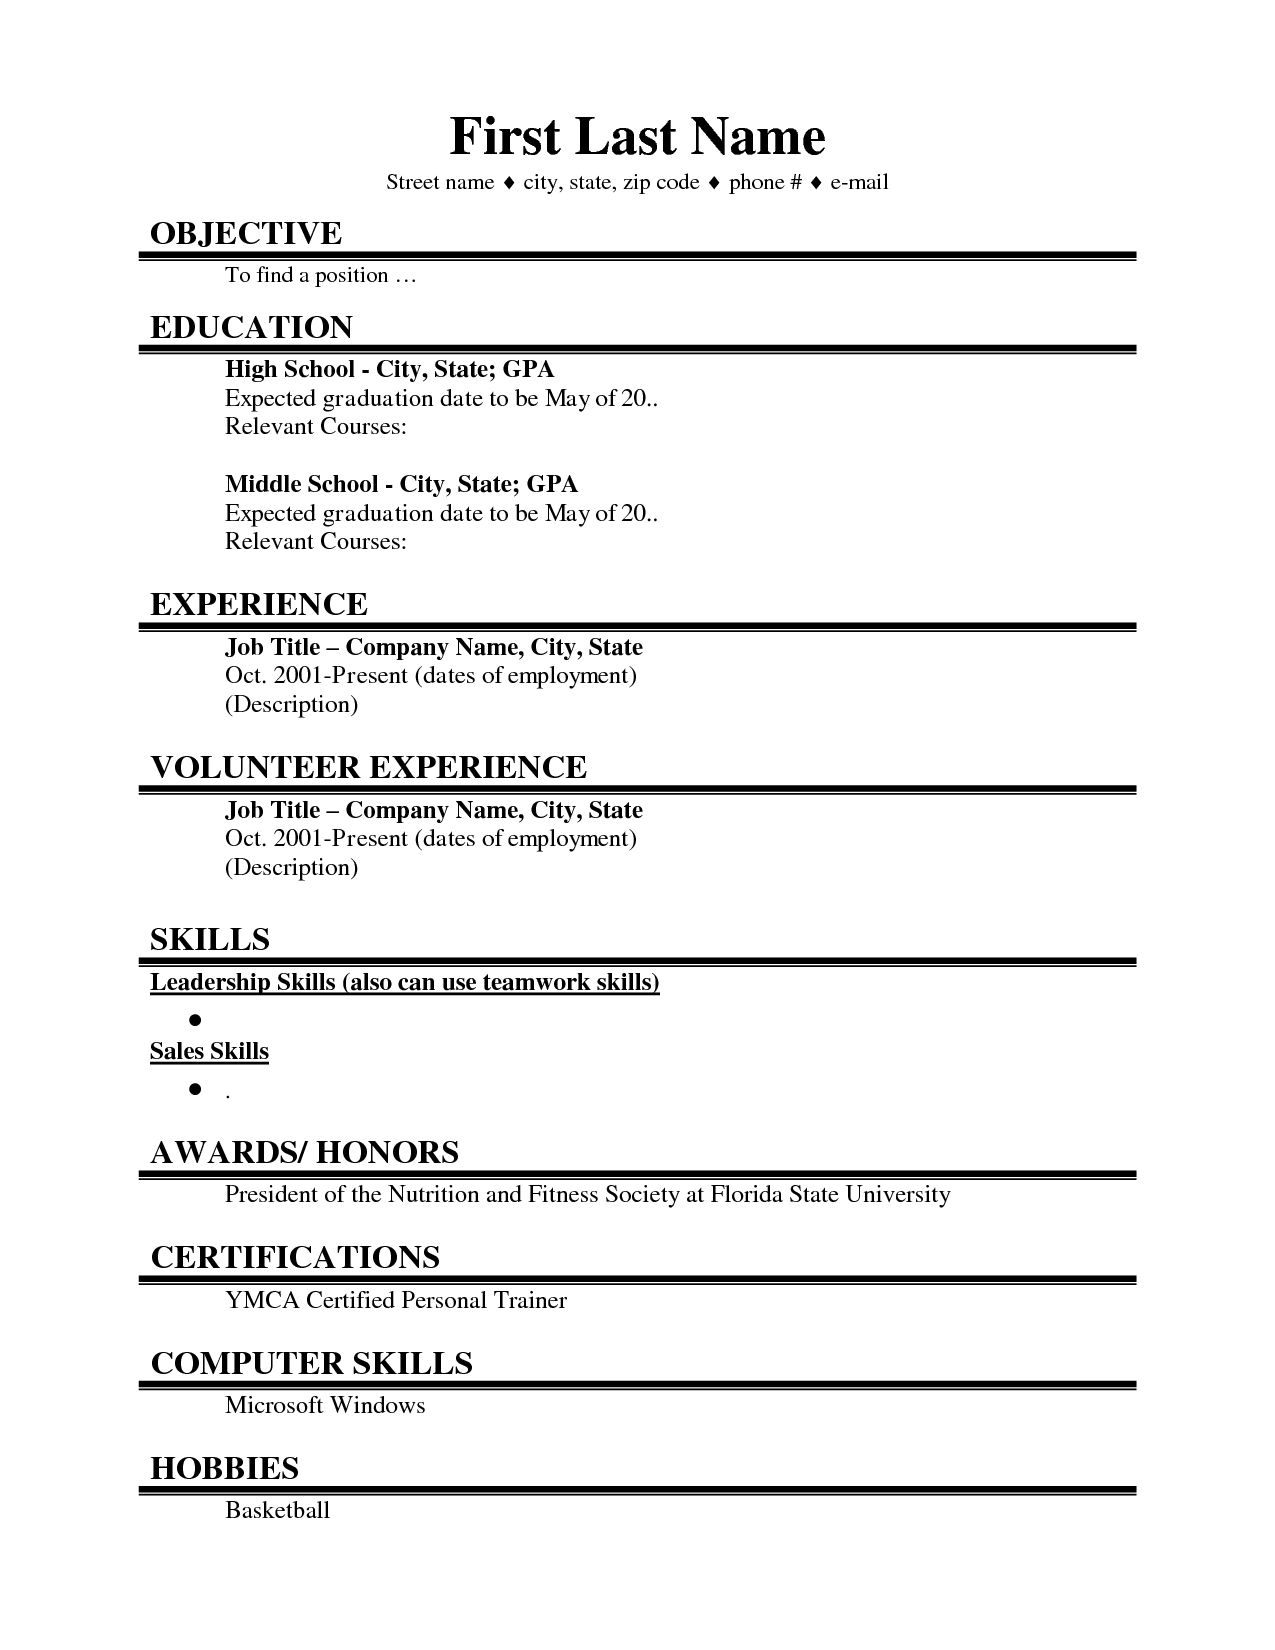 High School Resume Template First Job.Job Resume Examples For College Students Job Resume Examples